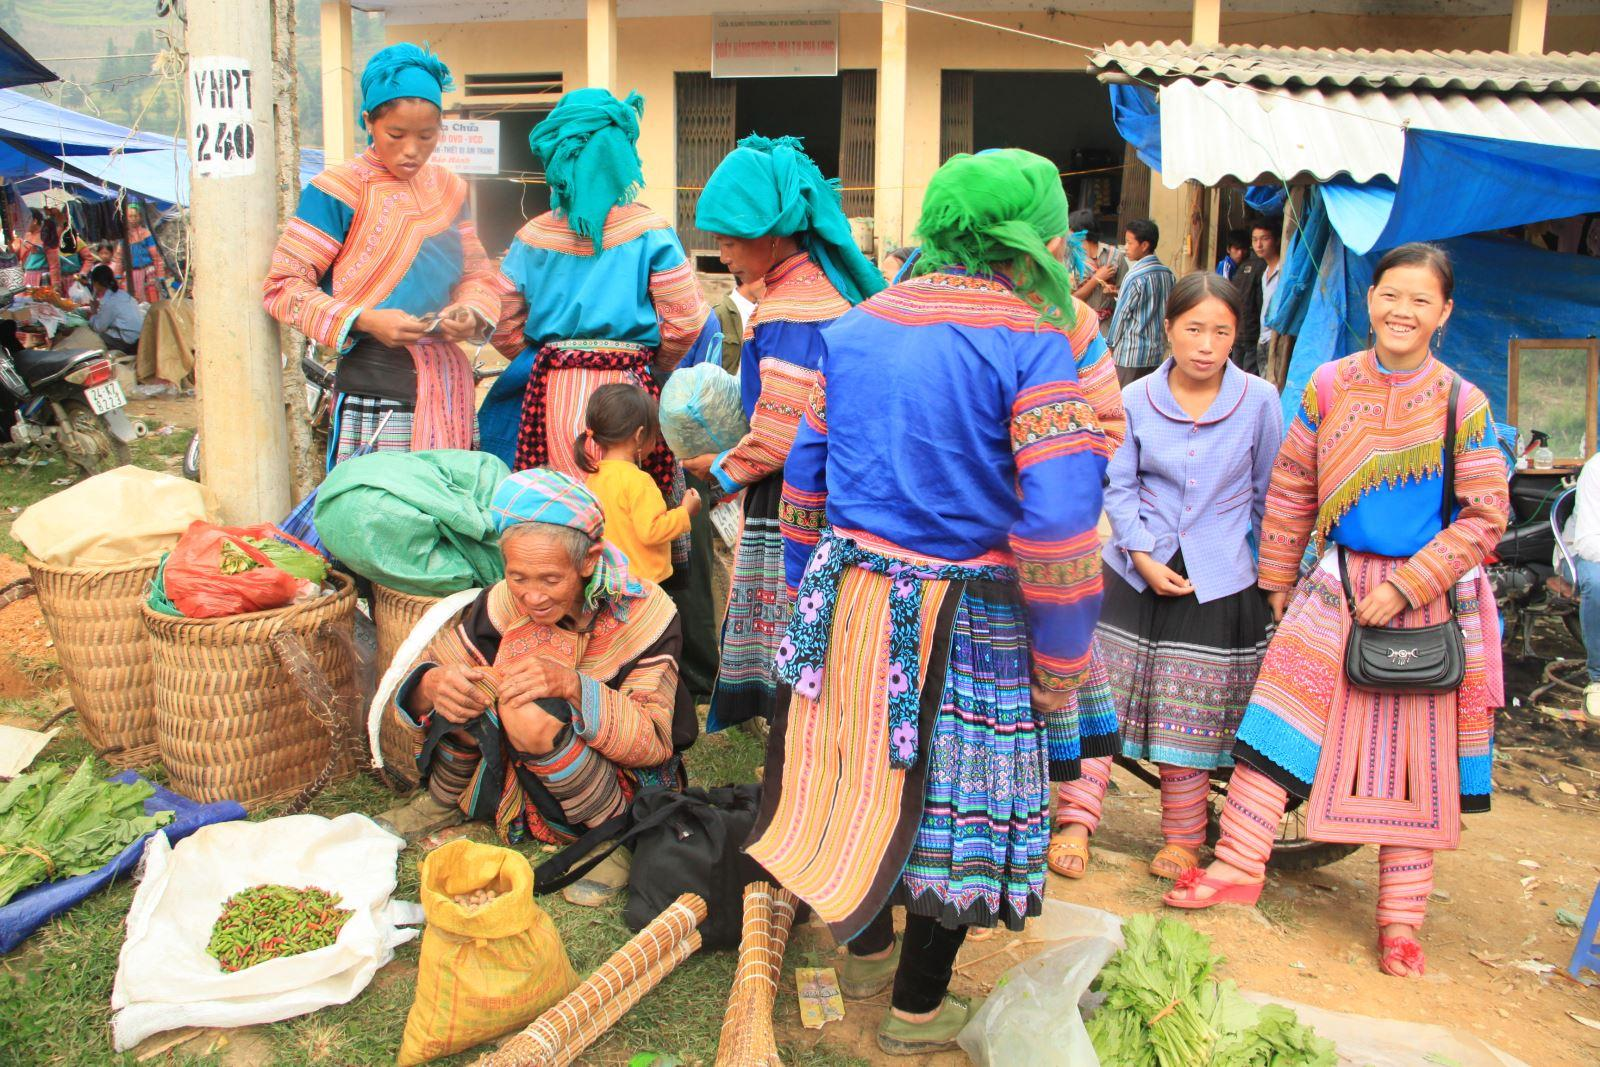 A fascinating local market in Sapa